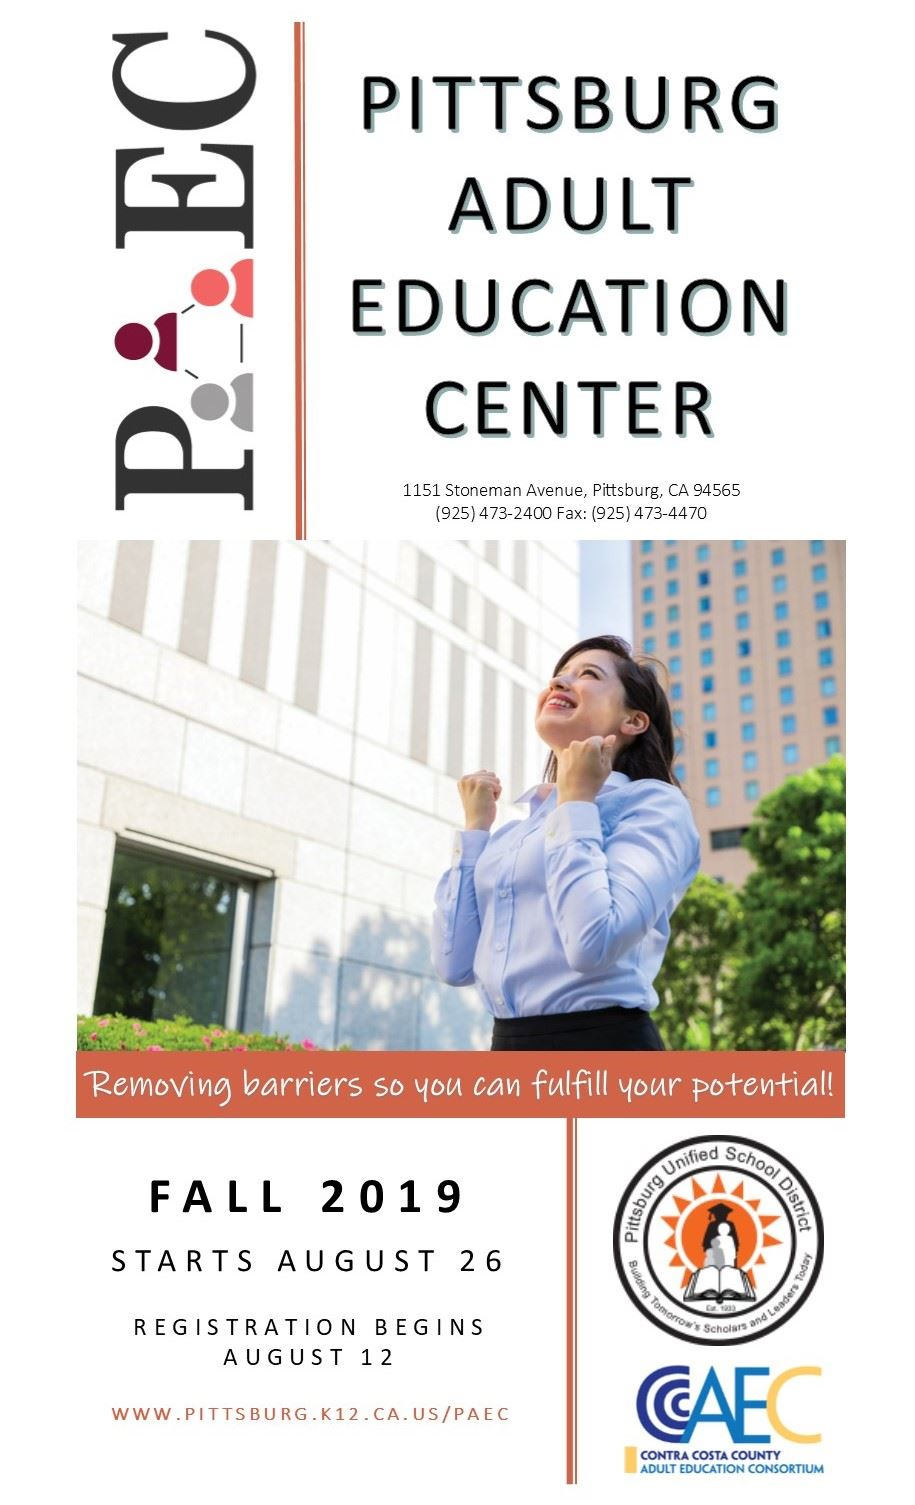 Pittsburg Adult Education Center / Homepage